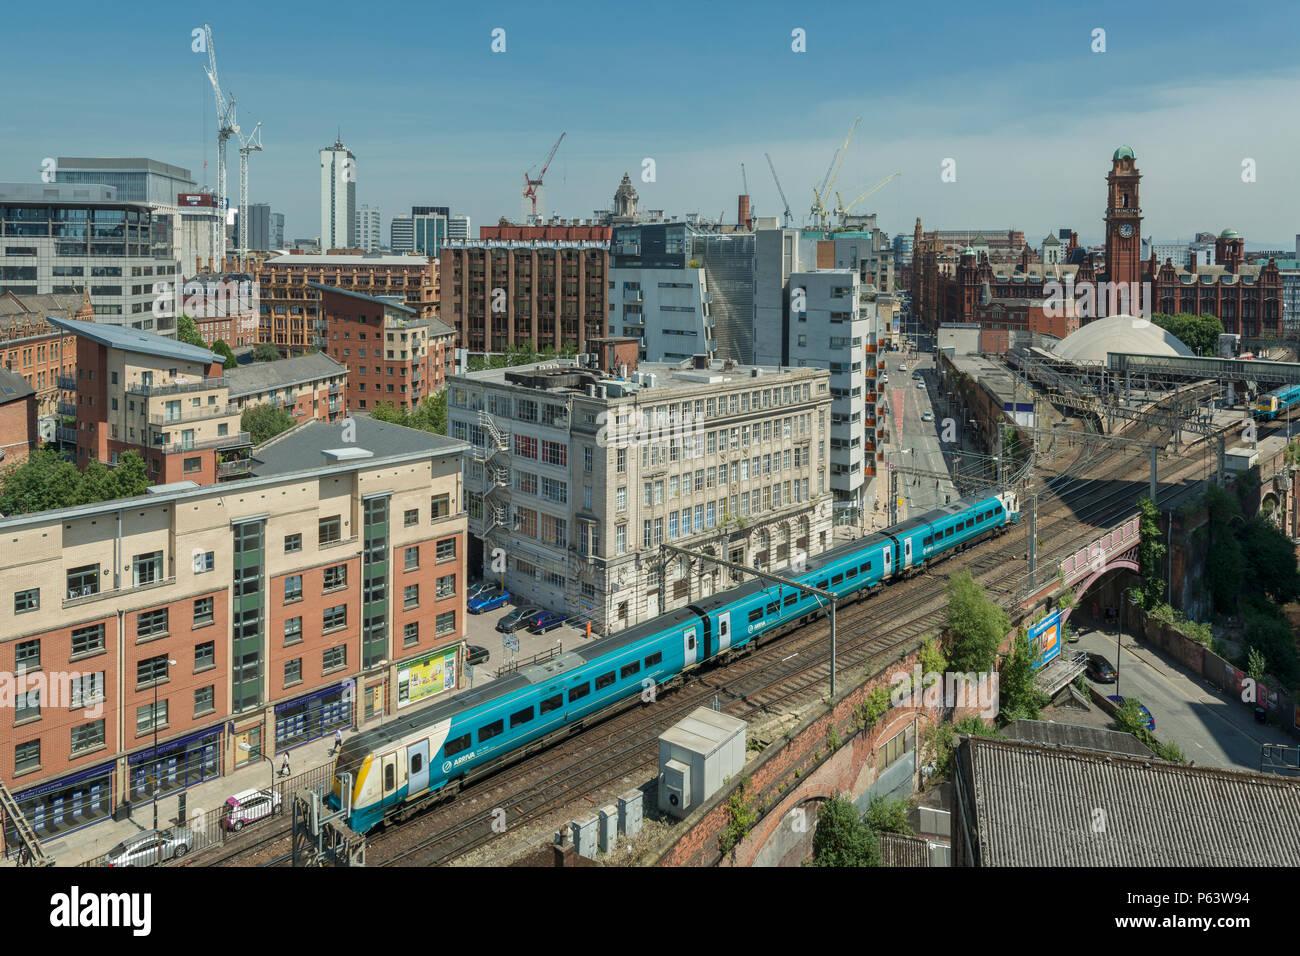 An Arriva Train arrives at Oxford Road station in Manchester, with the city's skyline in the background. - Stock Image